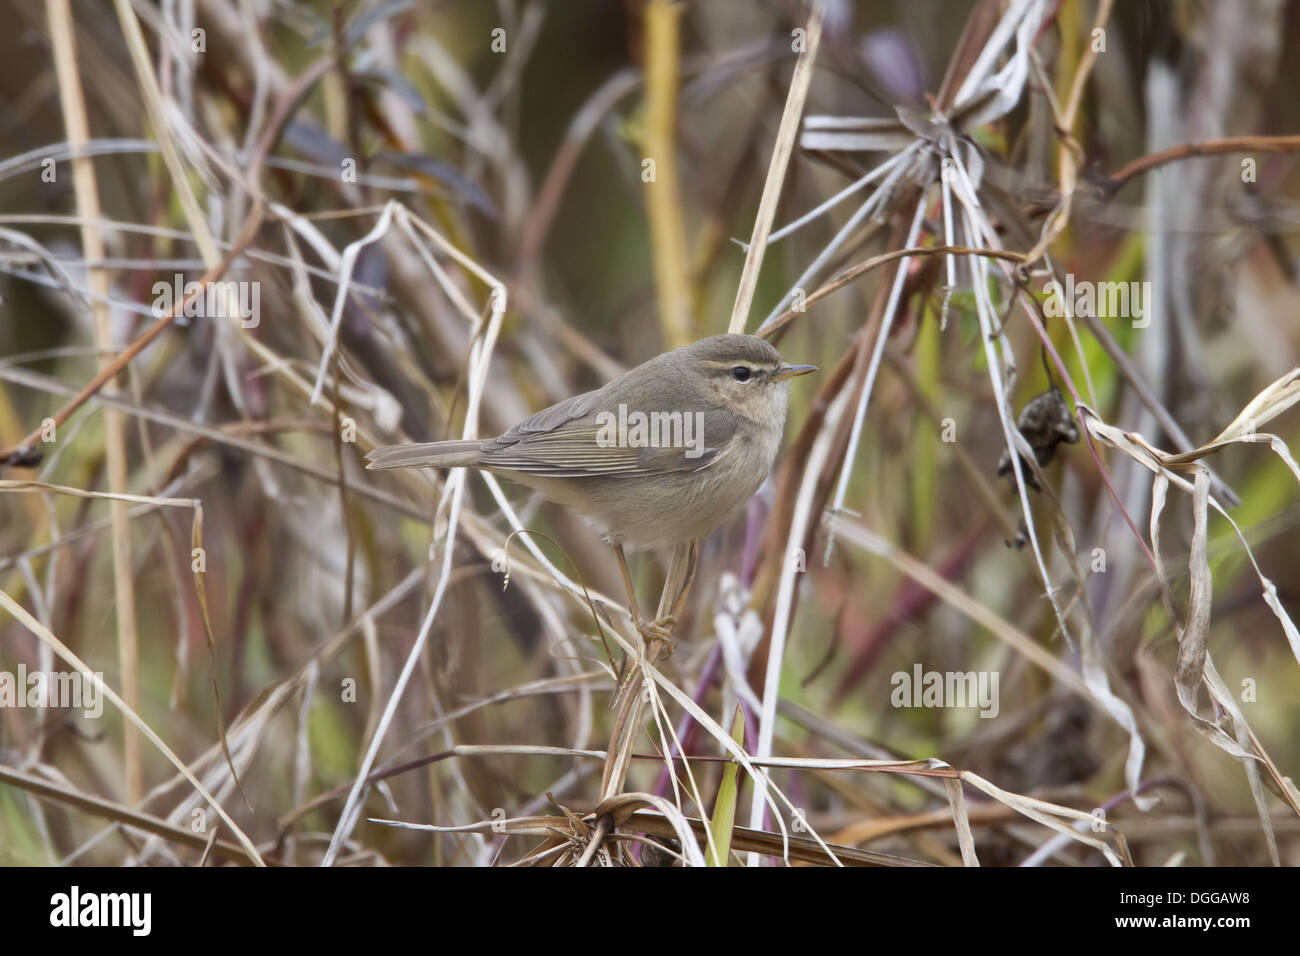 Dusky Warbler (Phylloscopus fuscatus) adult, perched on grass stems, Hong Kong, China, March Stock Photo